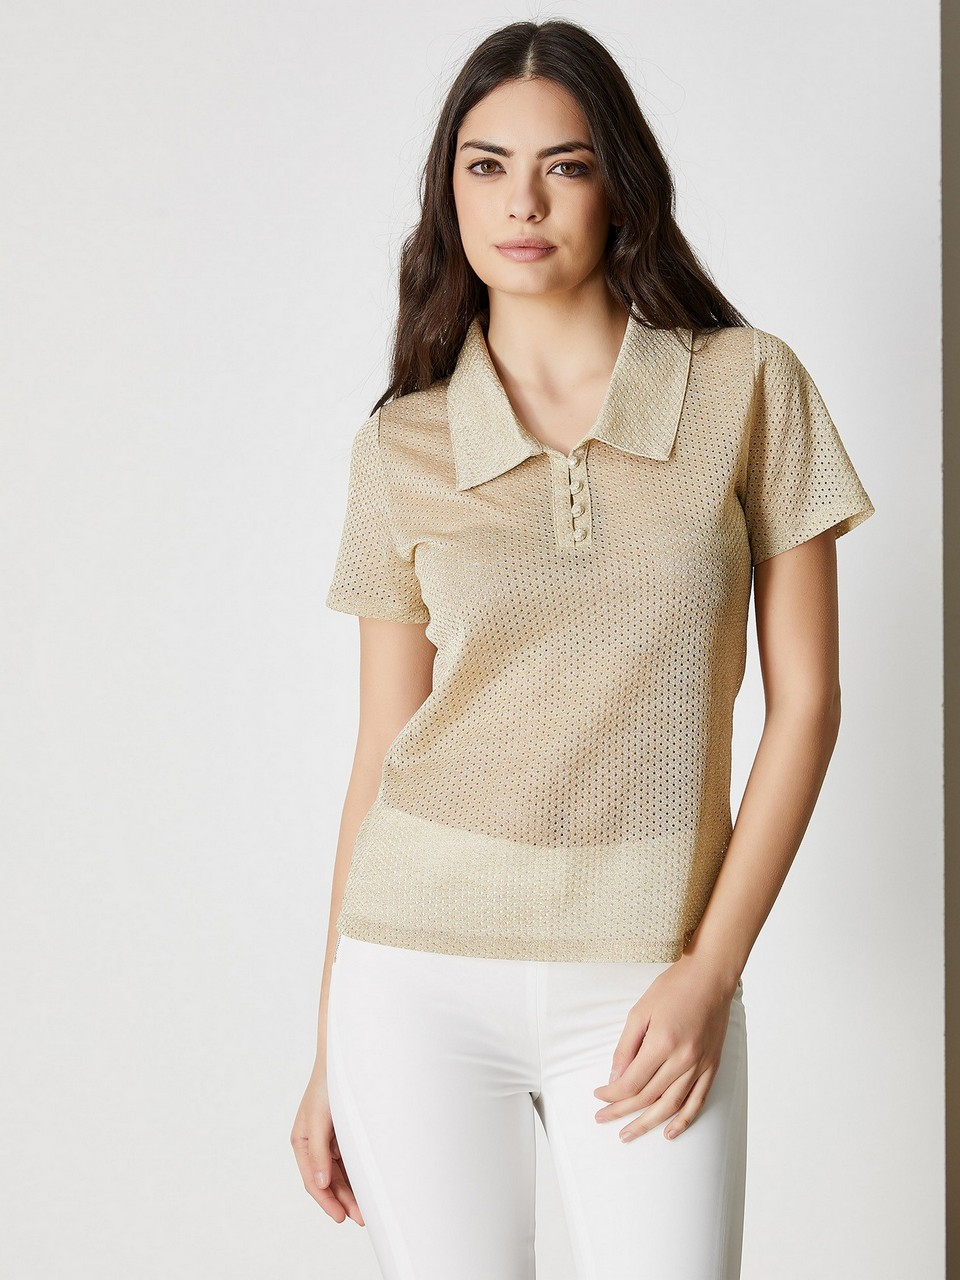 Shirt Neck Short Sleeve Blouse